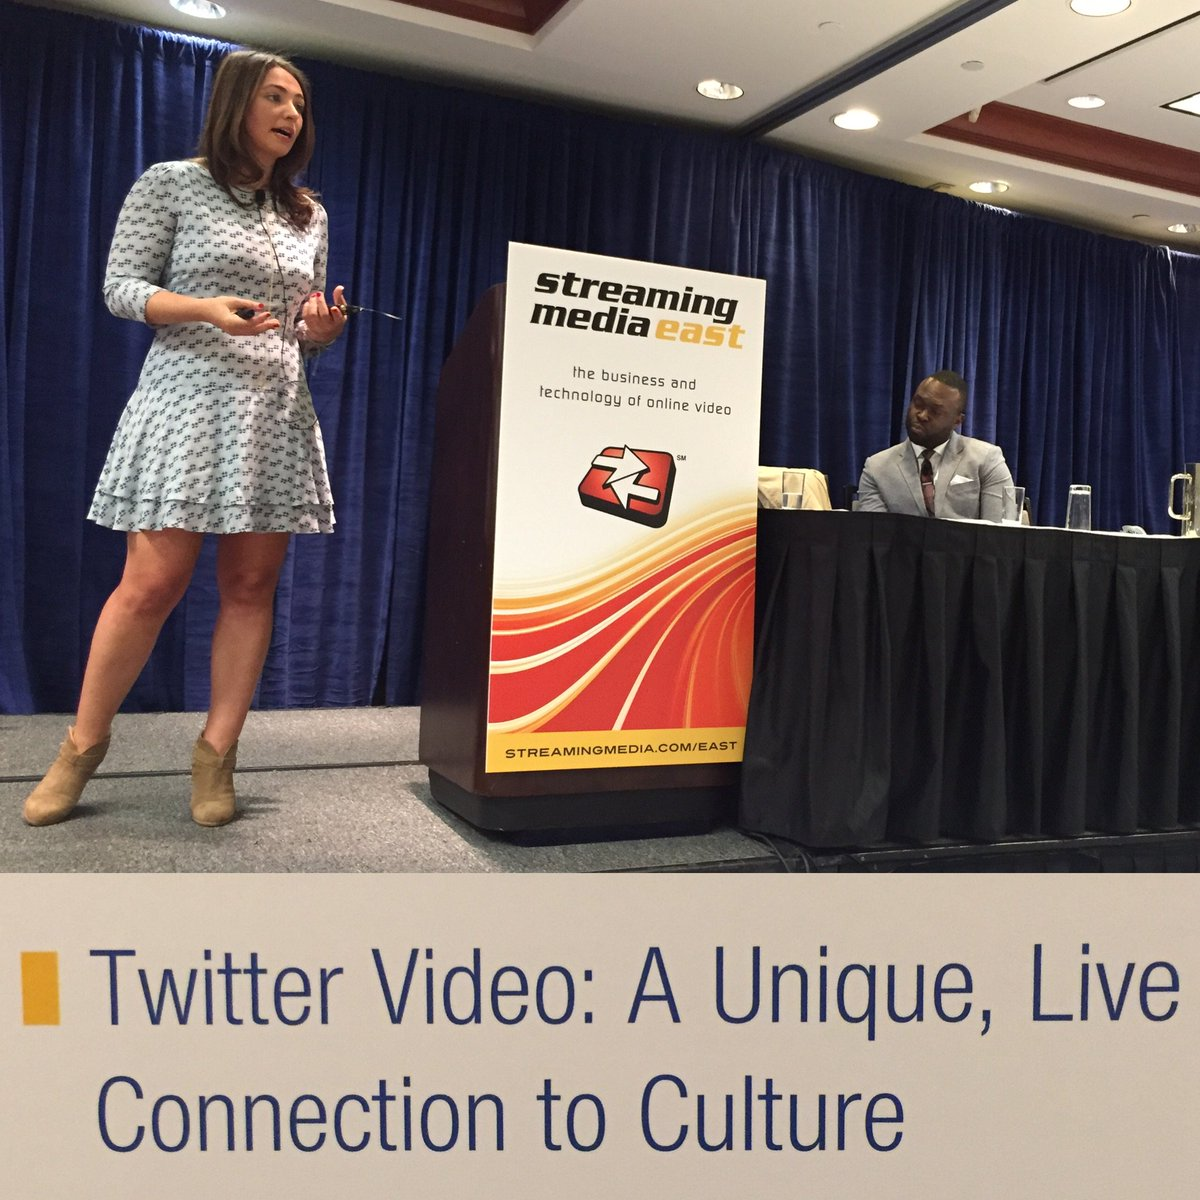 Twitter's Nina Mishkin speaking right now at #smeast - Retweet for a chance to win a #firetv @mishkin @twitter https://t.co/KDTkJbiAr8